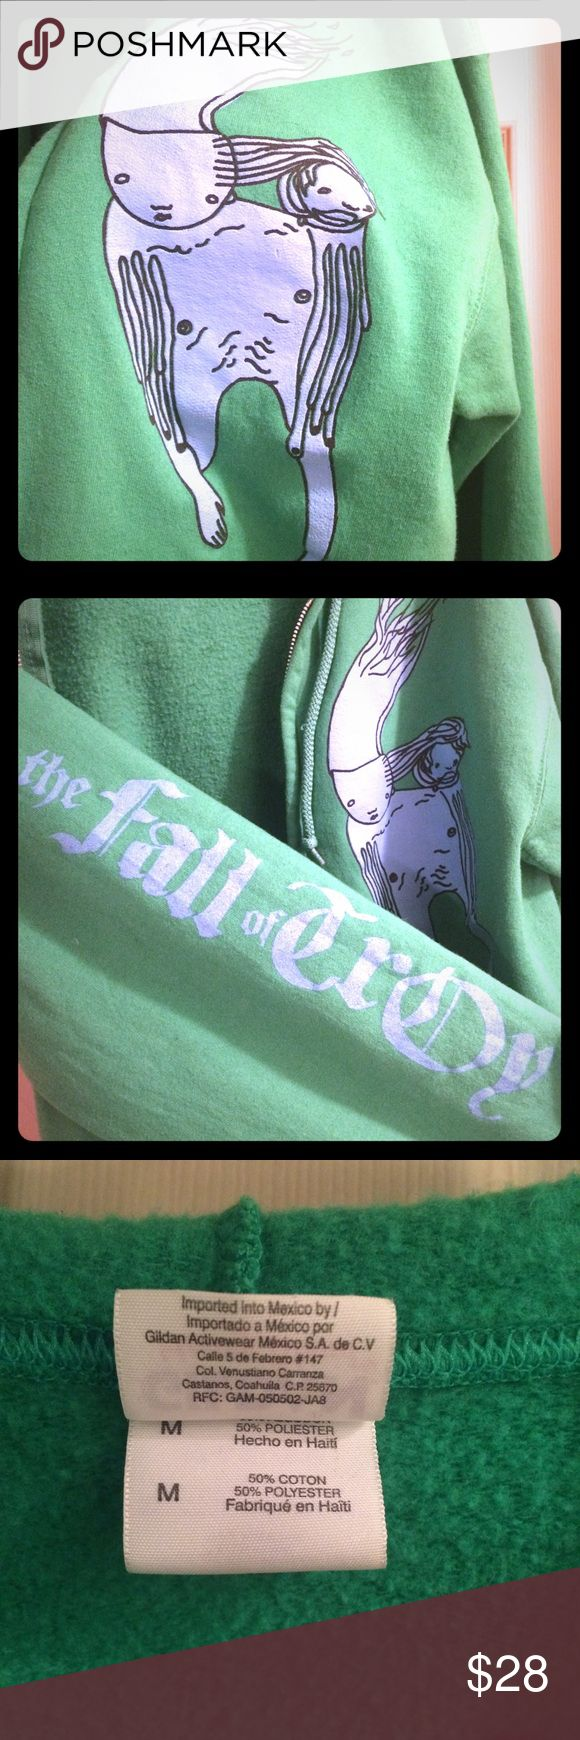 THE FALL OF TROY - Manipulator - Zip Up Hoodie THE FALL OF TROY - Manipulator - Kelly Green Zip Up Hoodie // Unisex size M // runs snug is a 50/50 blend // WORN ONCE was too small when I bought this. // still in great condition for FOT Fans looking for something vintage from the band. Tops Sweatshirts & Hoodies